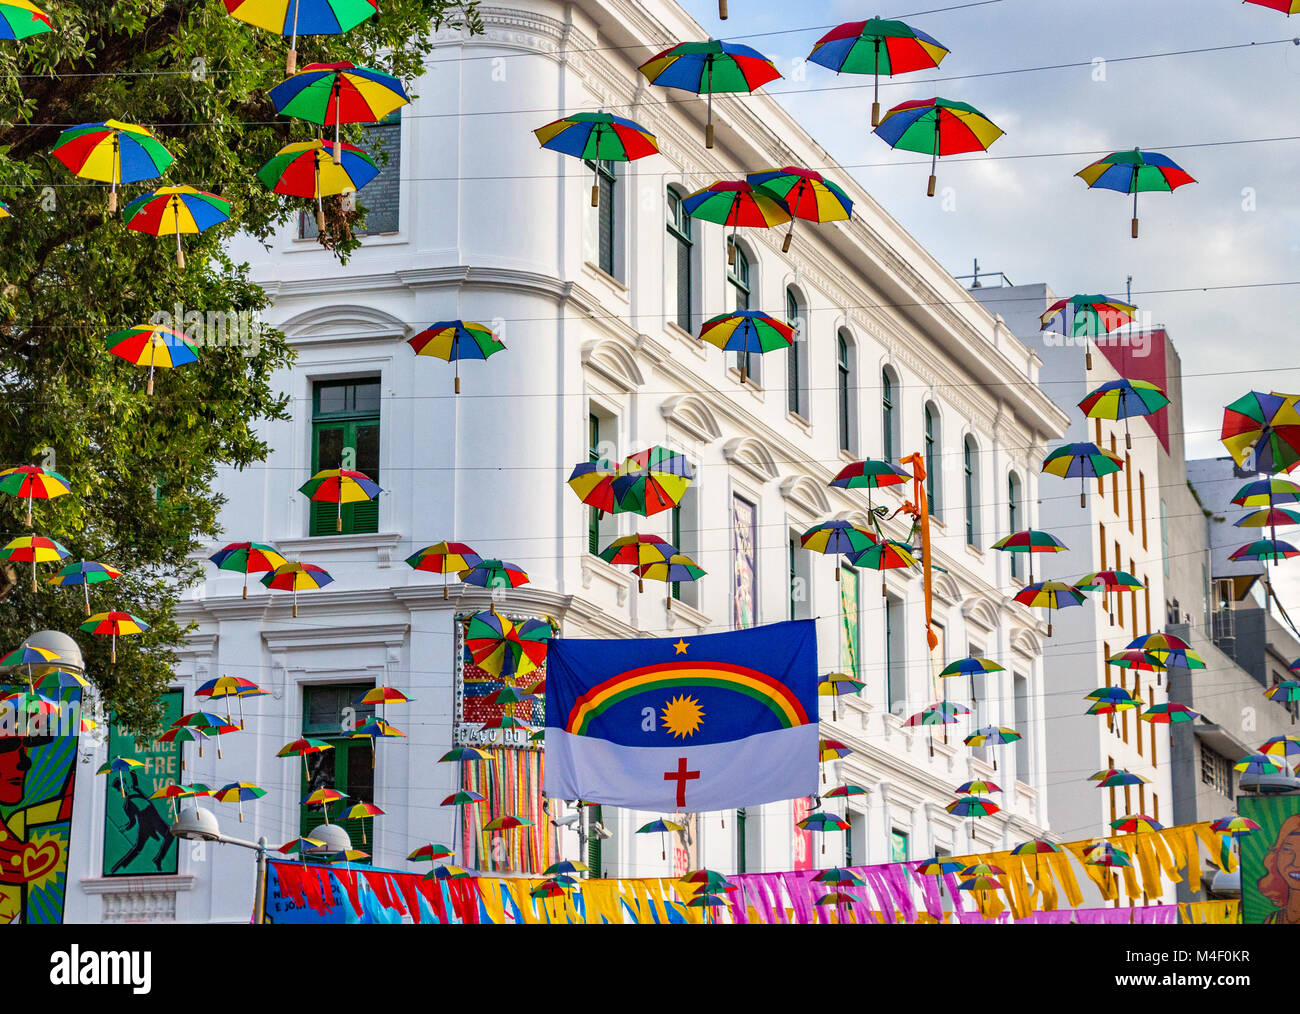 Recife, Brazil - February 9th, 2018: The historic center of the city of Recife is decorated with hundred of clown - Stock Image